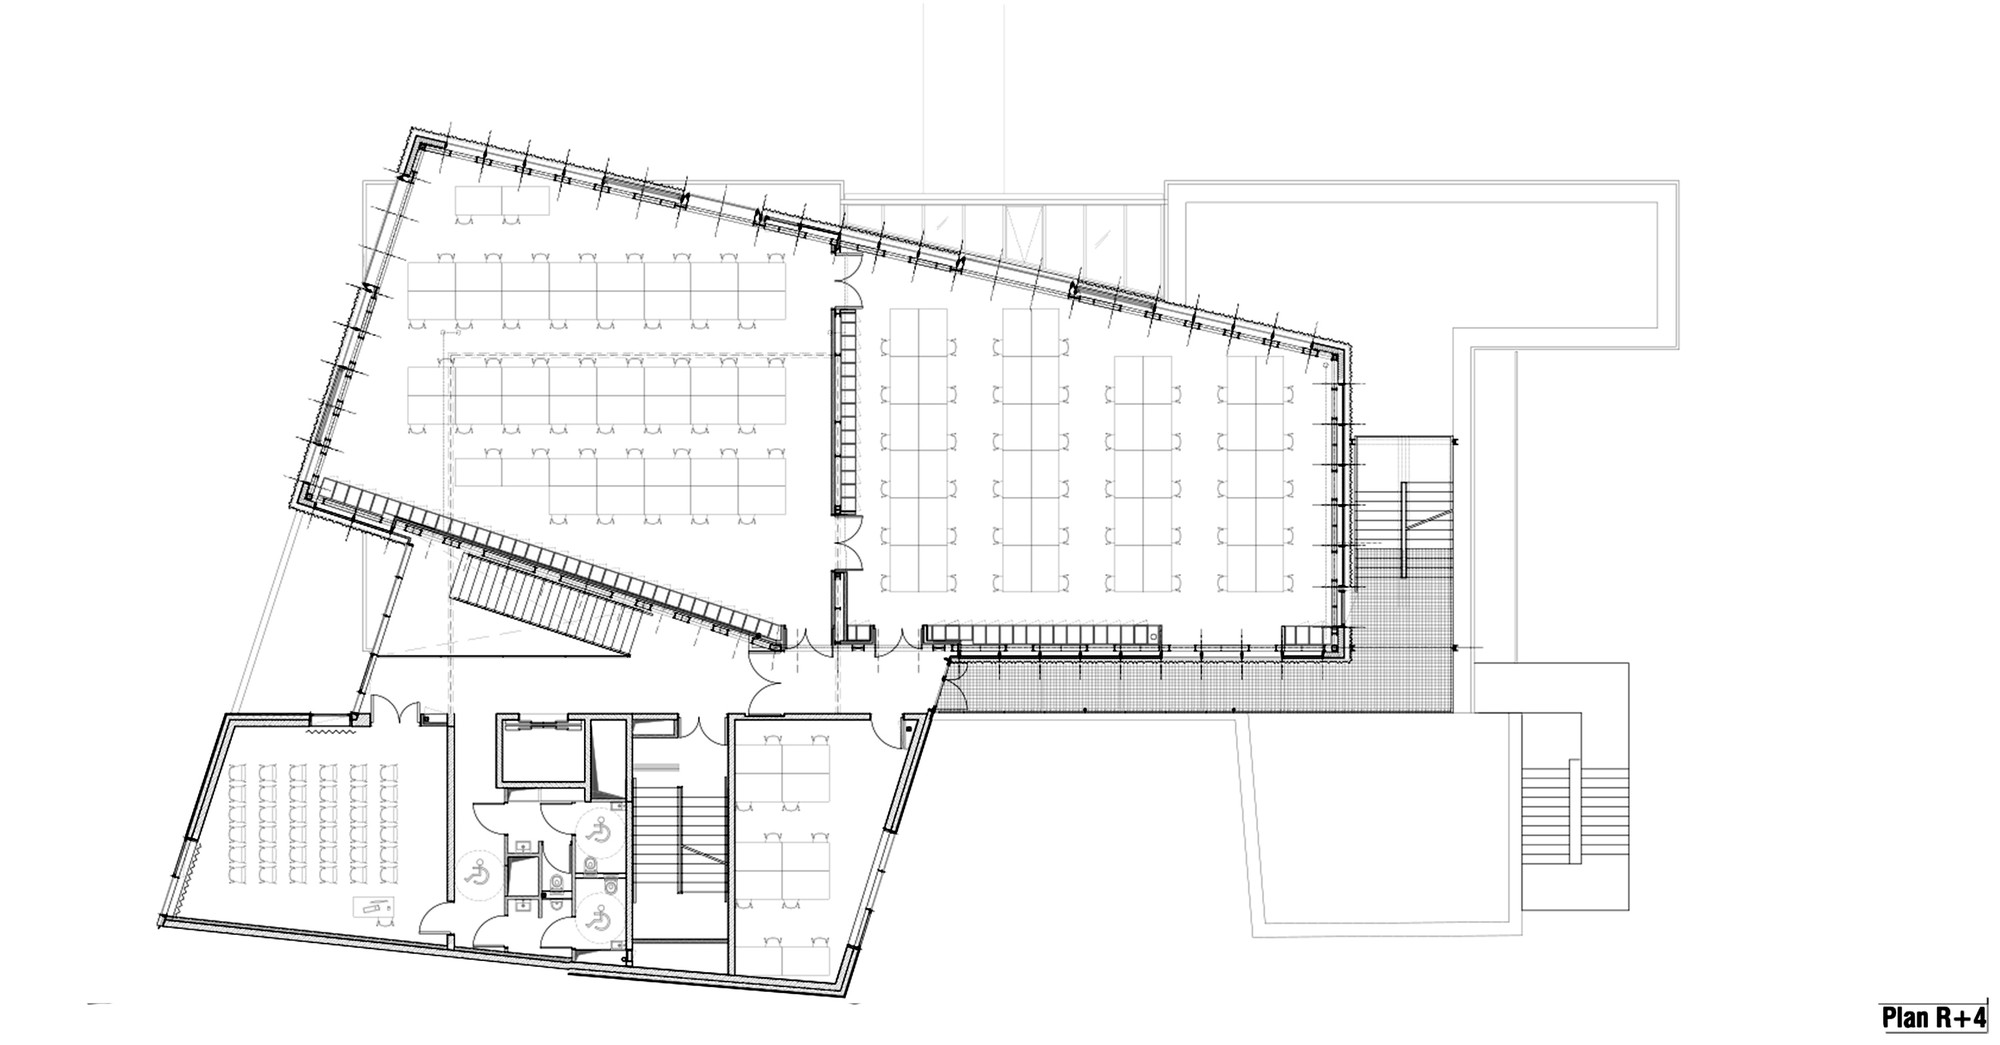 gallery of strasbourg school of architecture / marc mimram - 13